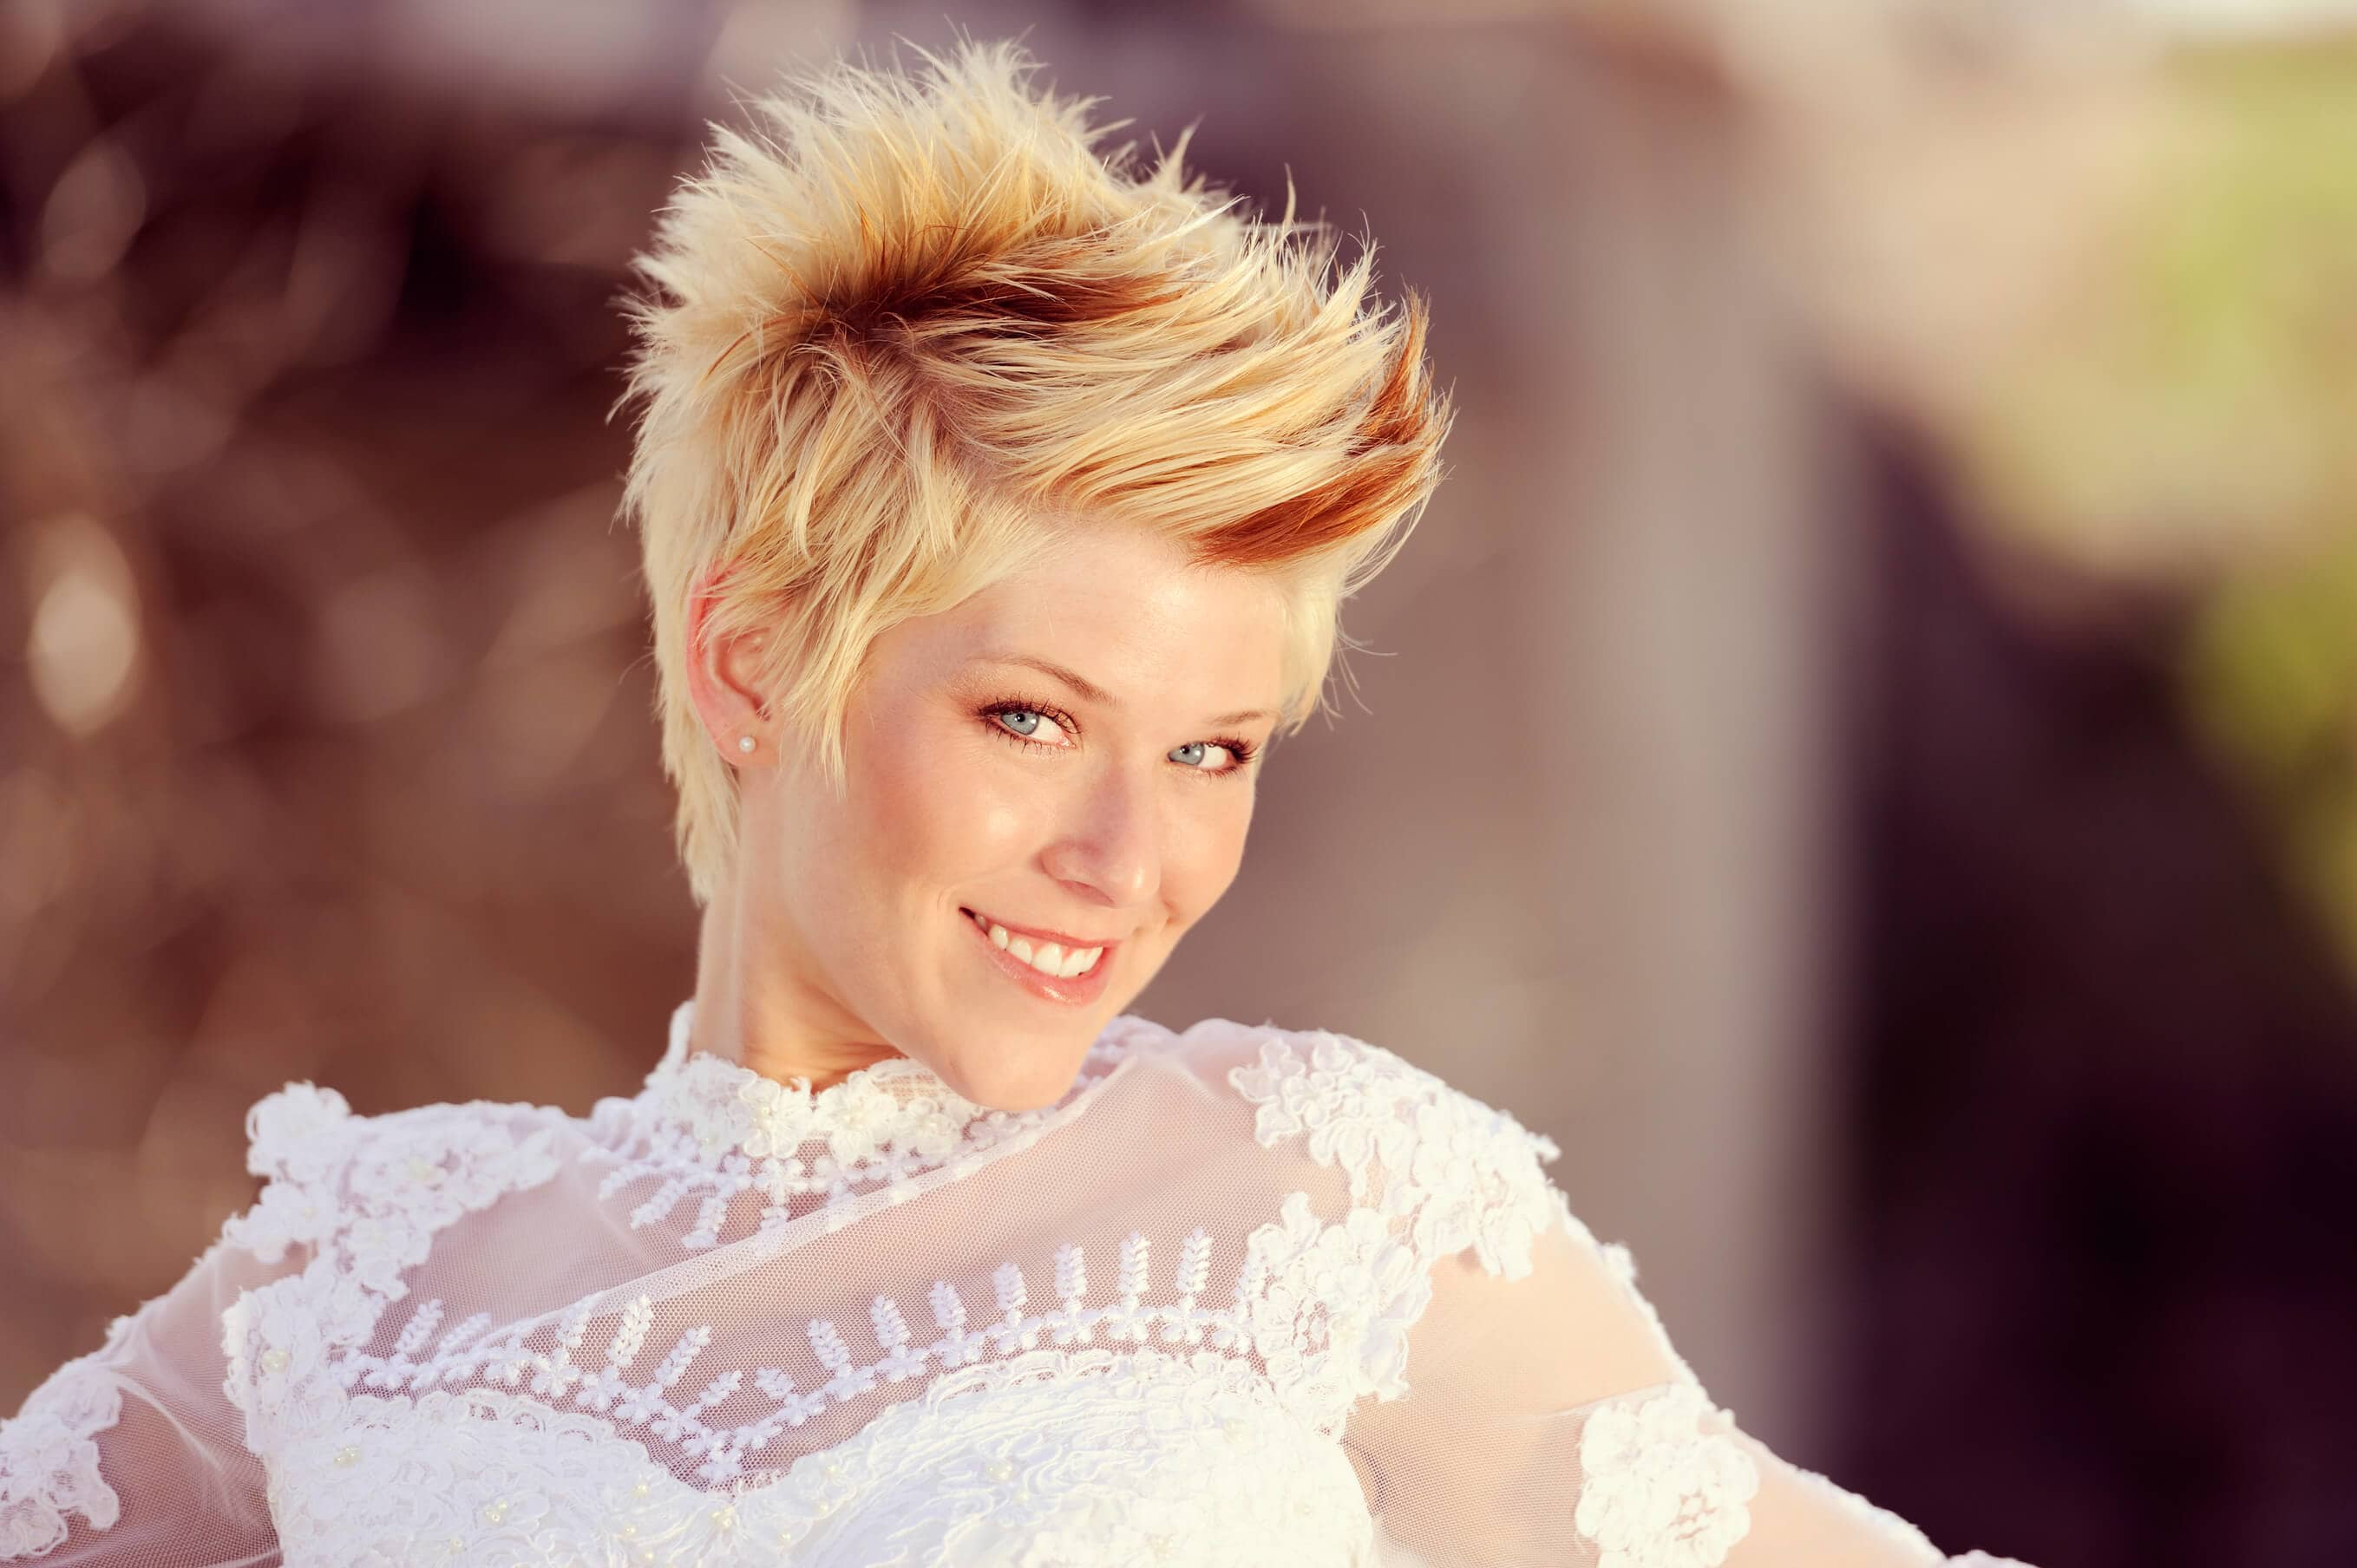 Romantic Wedding Short Haircut for Your Amazing Day! 2